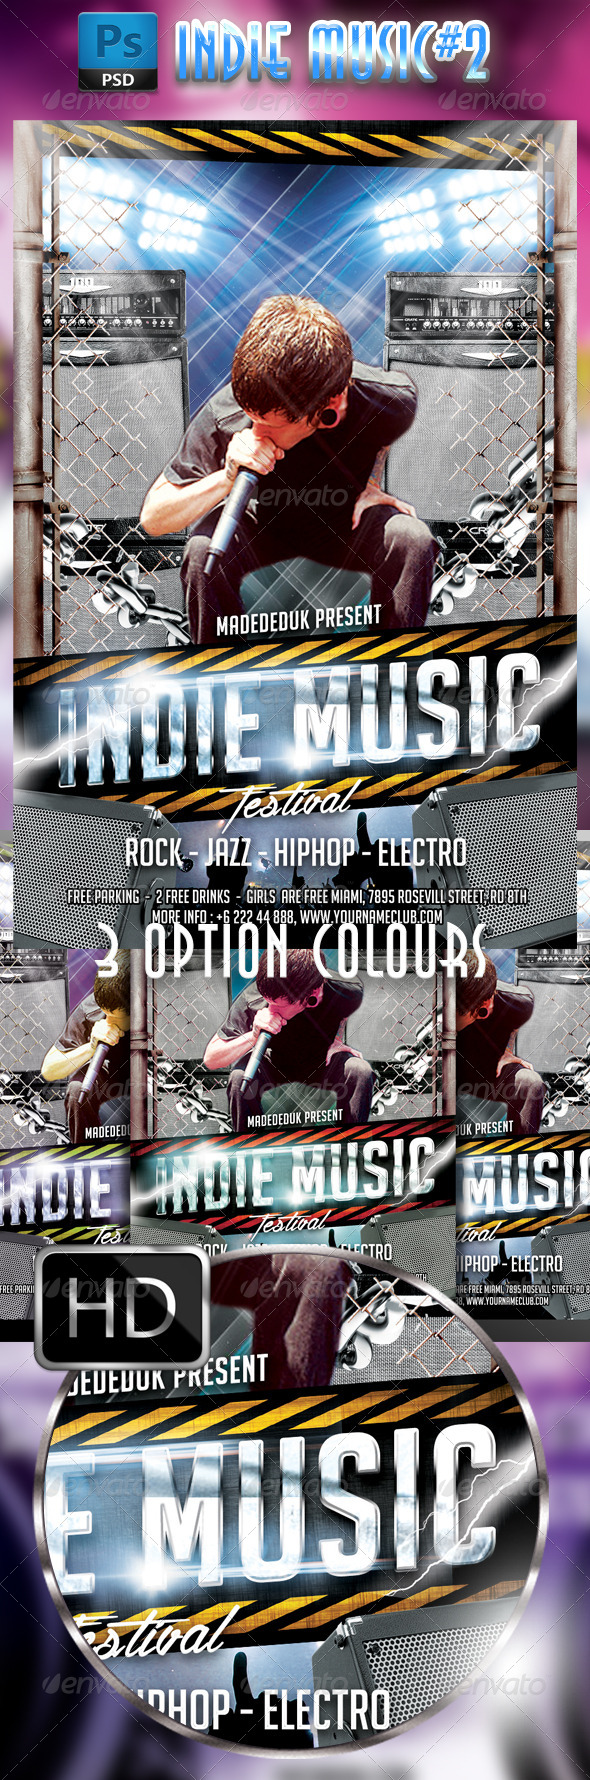 GraphicRiver Indie Music Festival #2 7836777